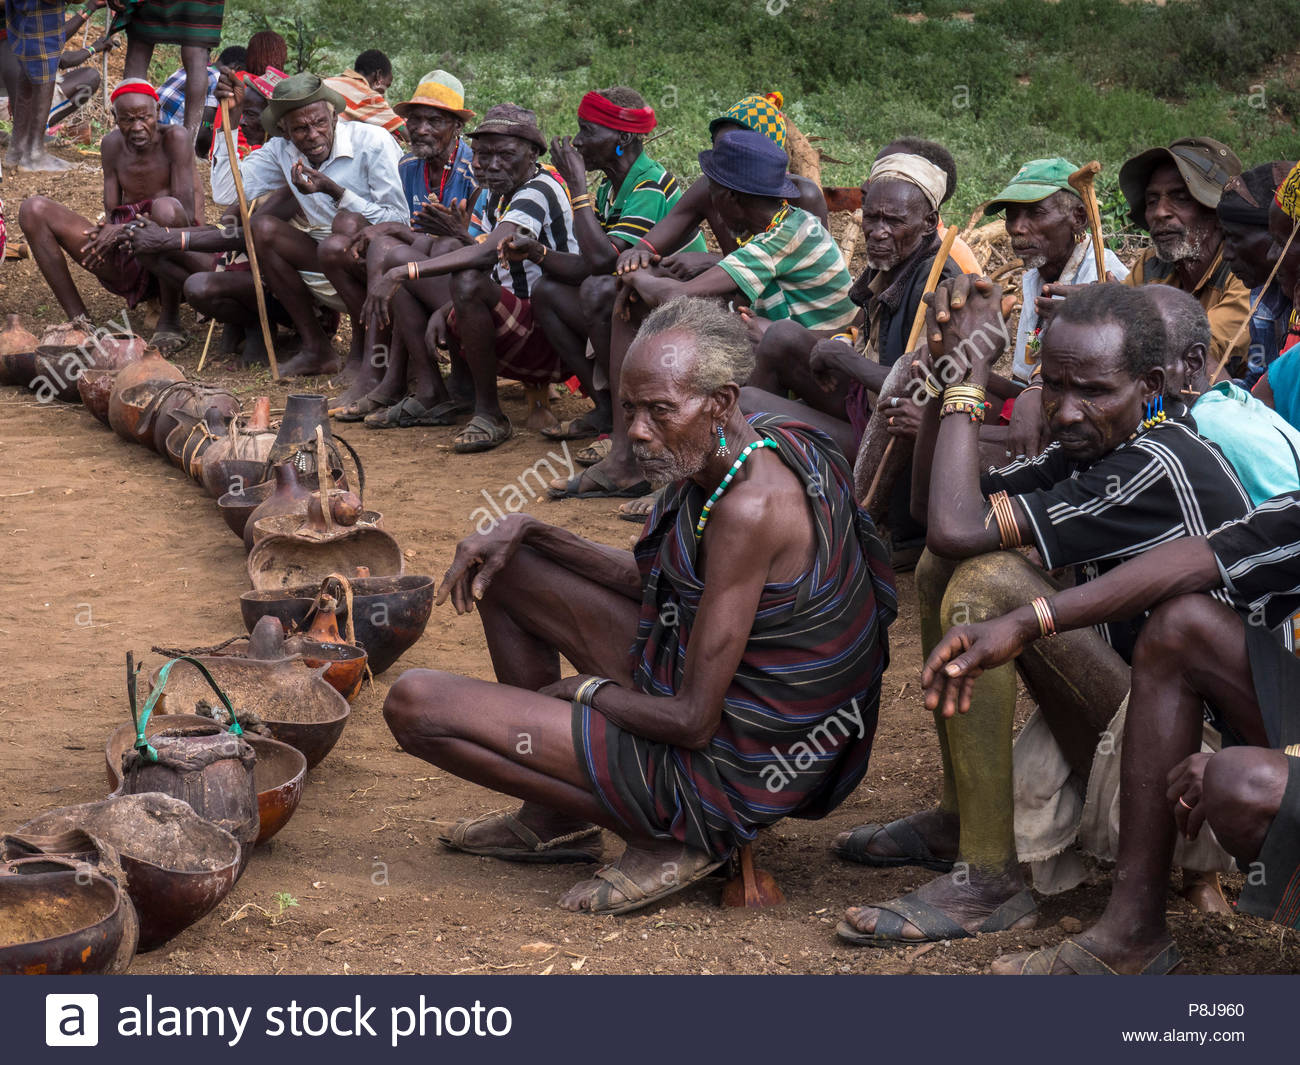 Group of old men from the Hamar tribe, squatting in a circle, Omo region, Ethiopia - Stock Image